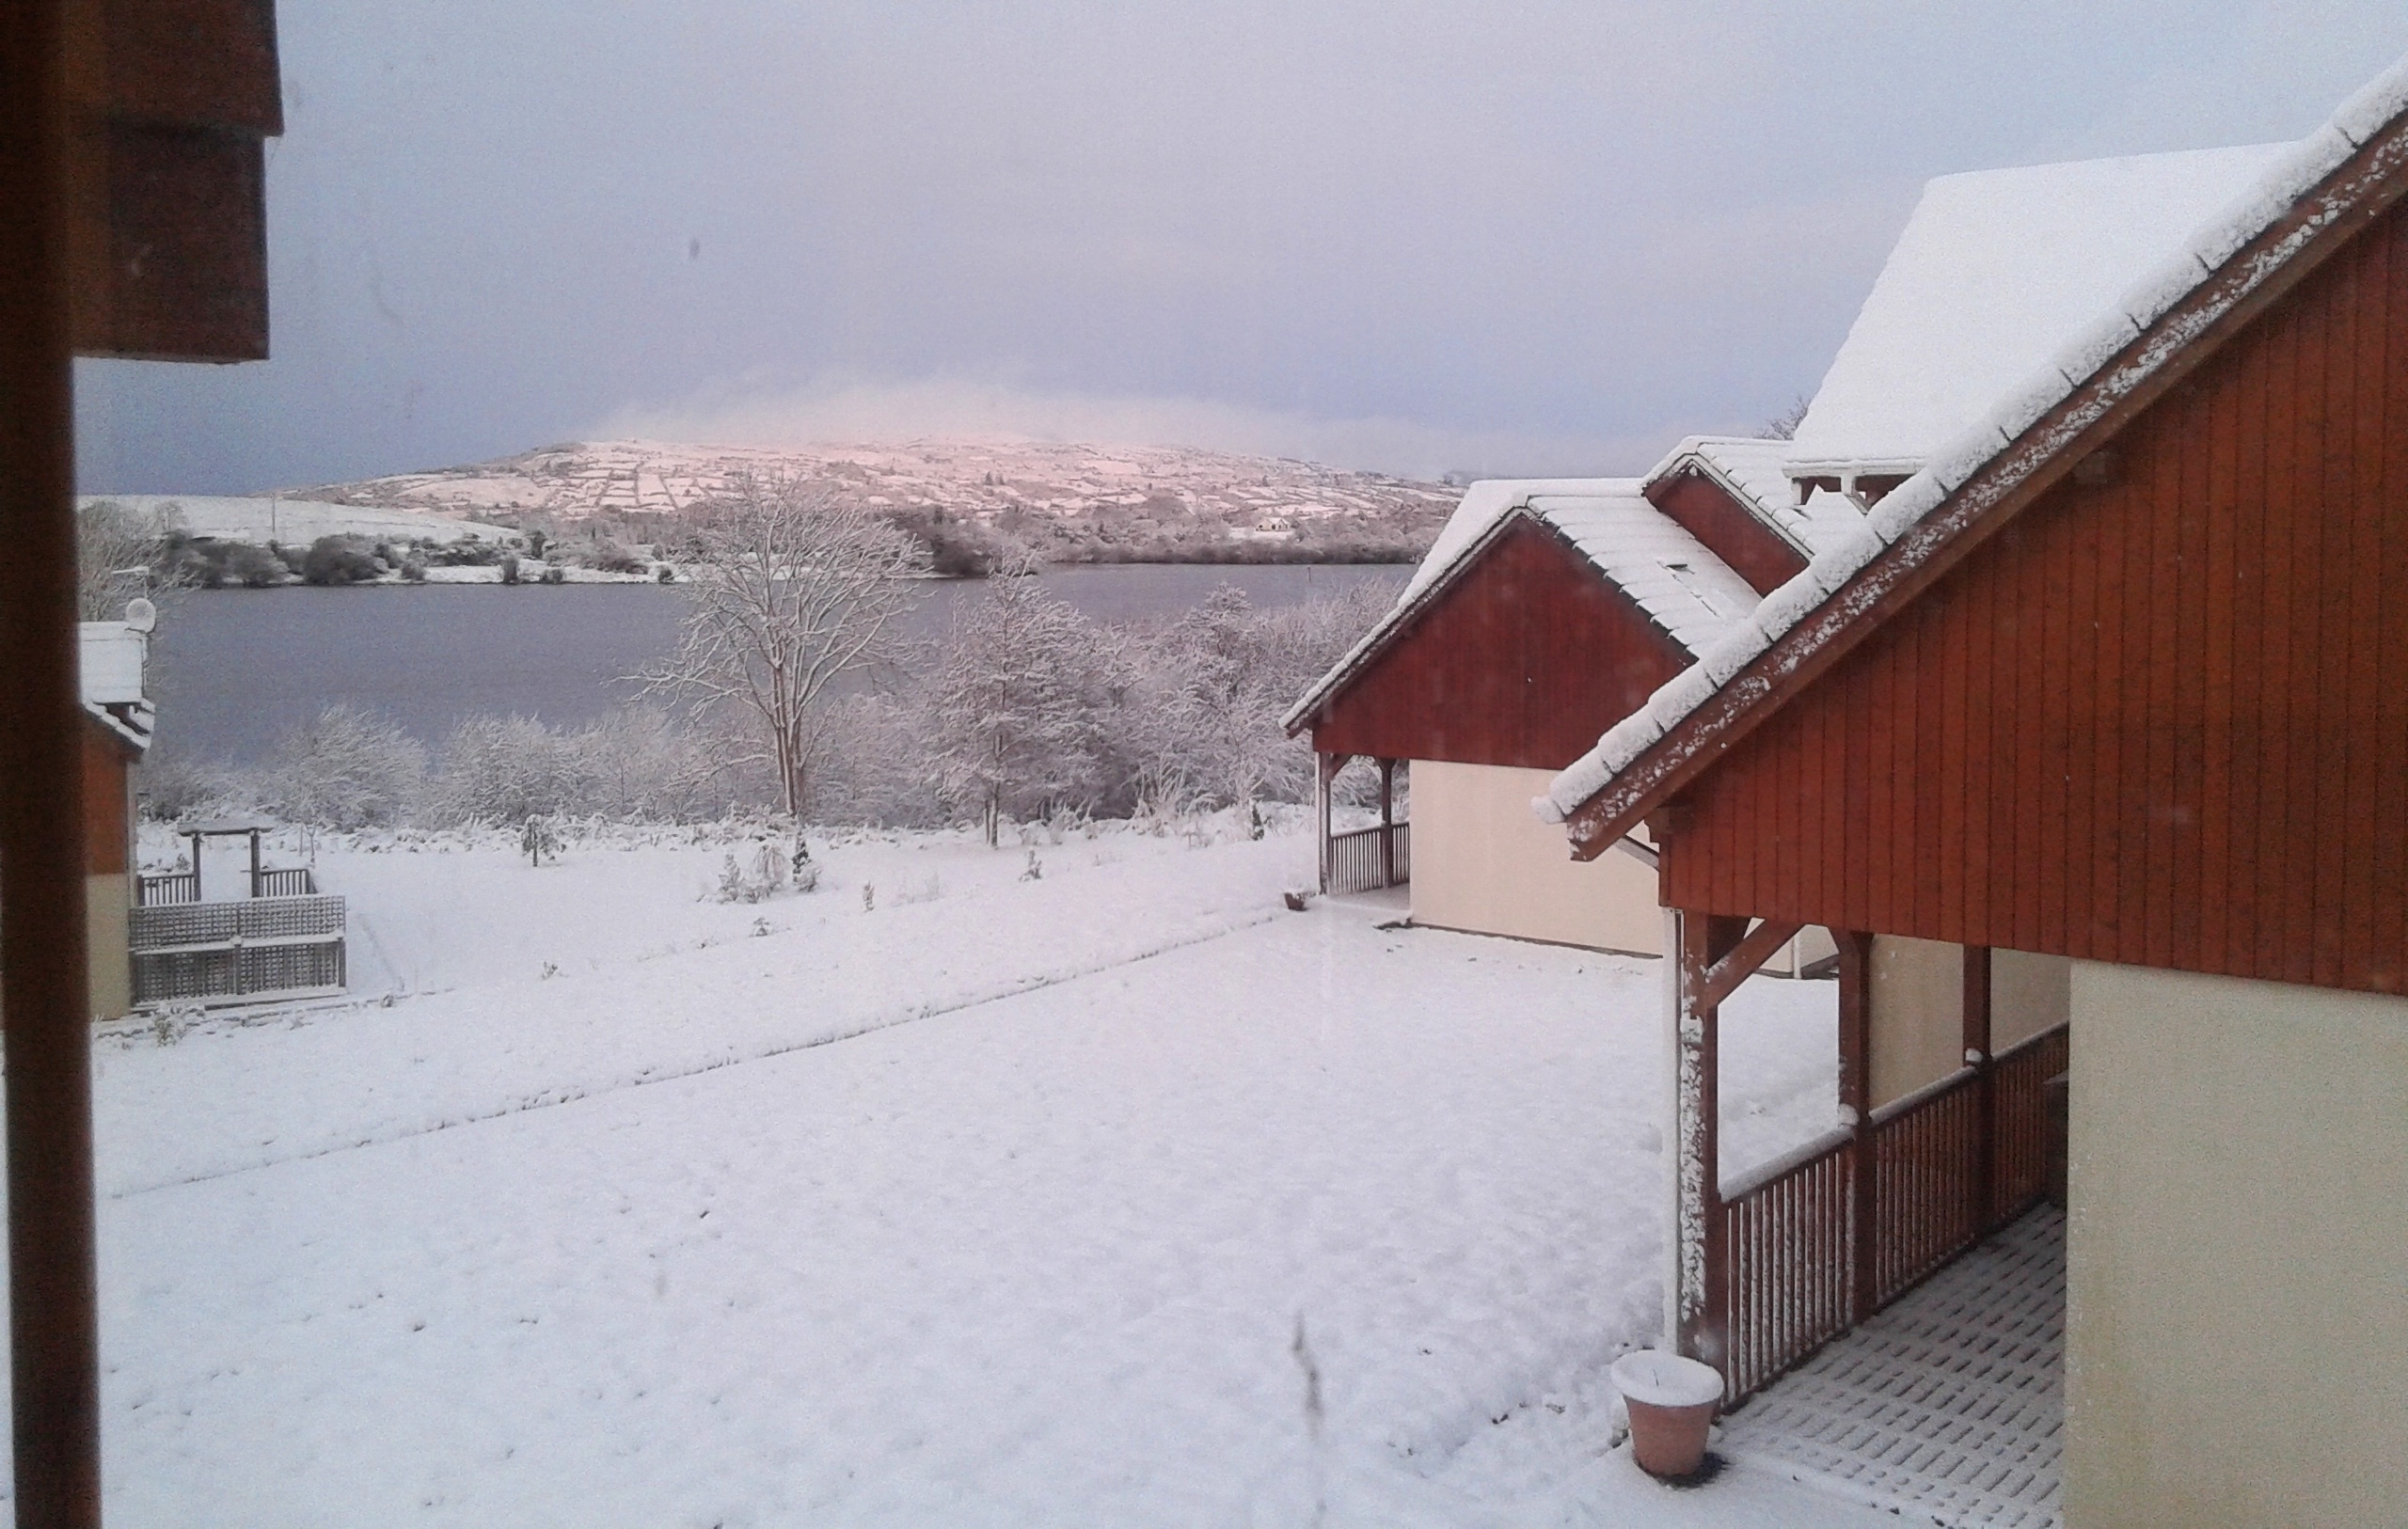 Snowy landscape from the EVS volunteers house